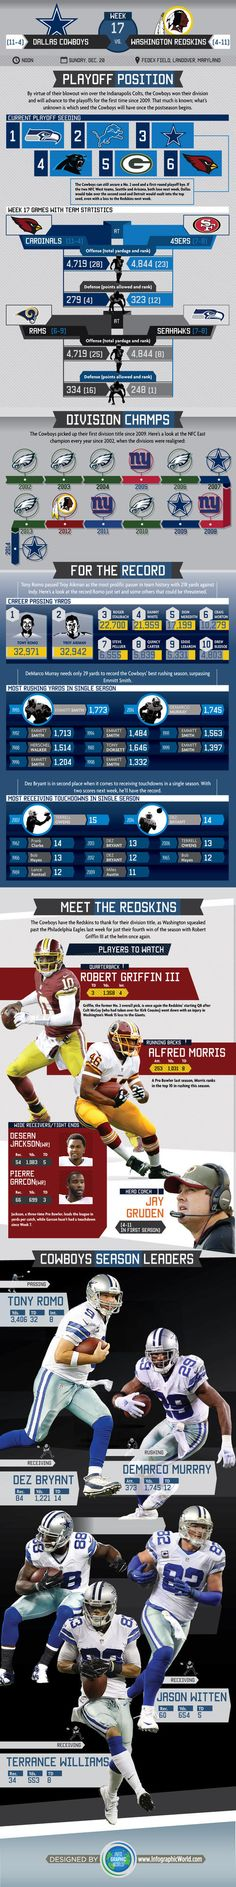 Infographic: Breaking Down Week 17 & The Cowboys' Playoff Picture #DALvsWAS